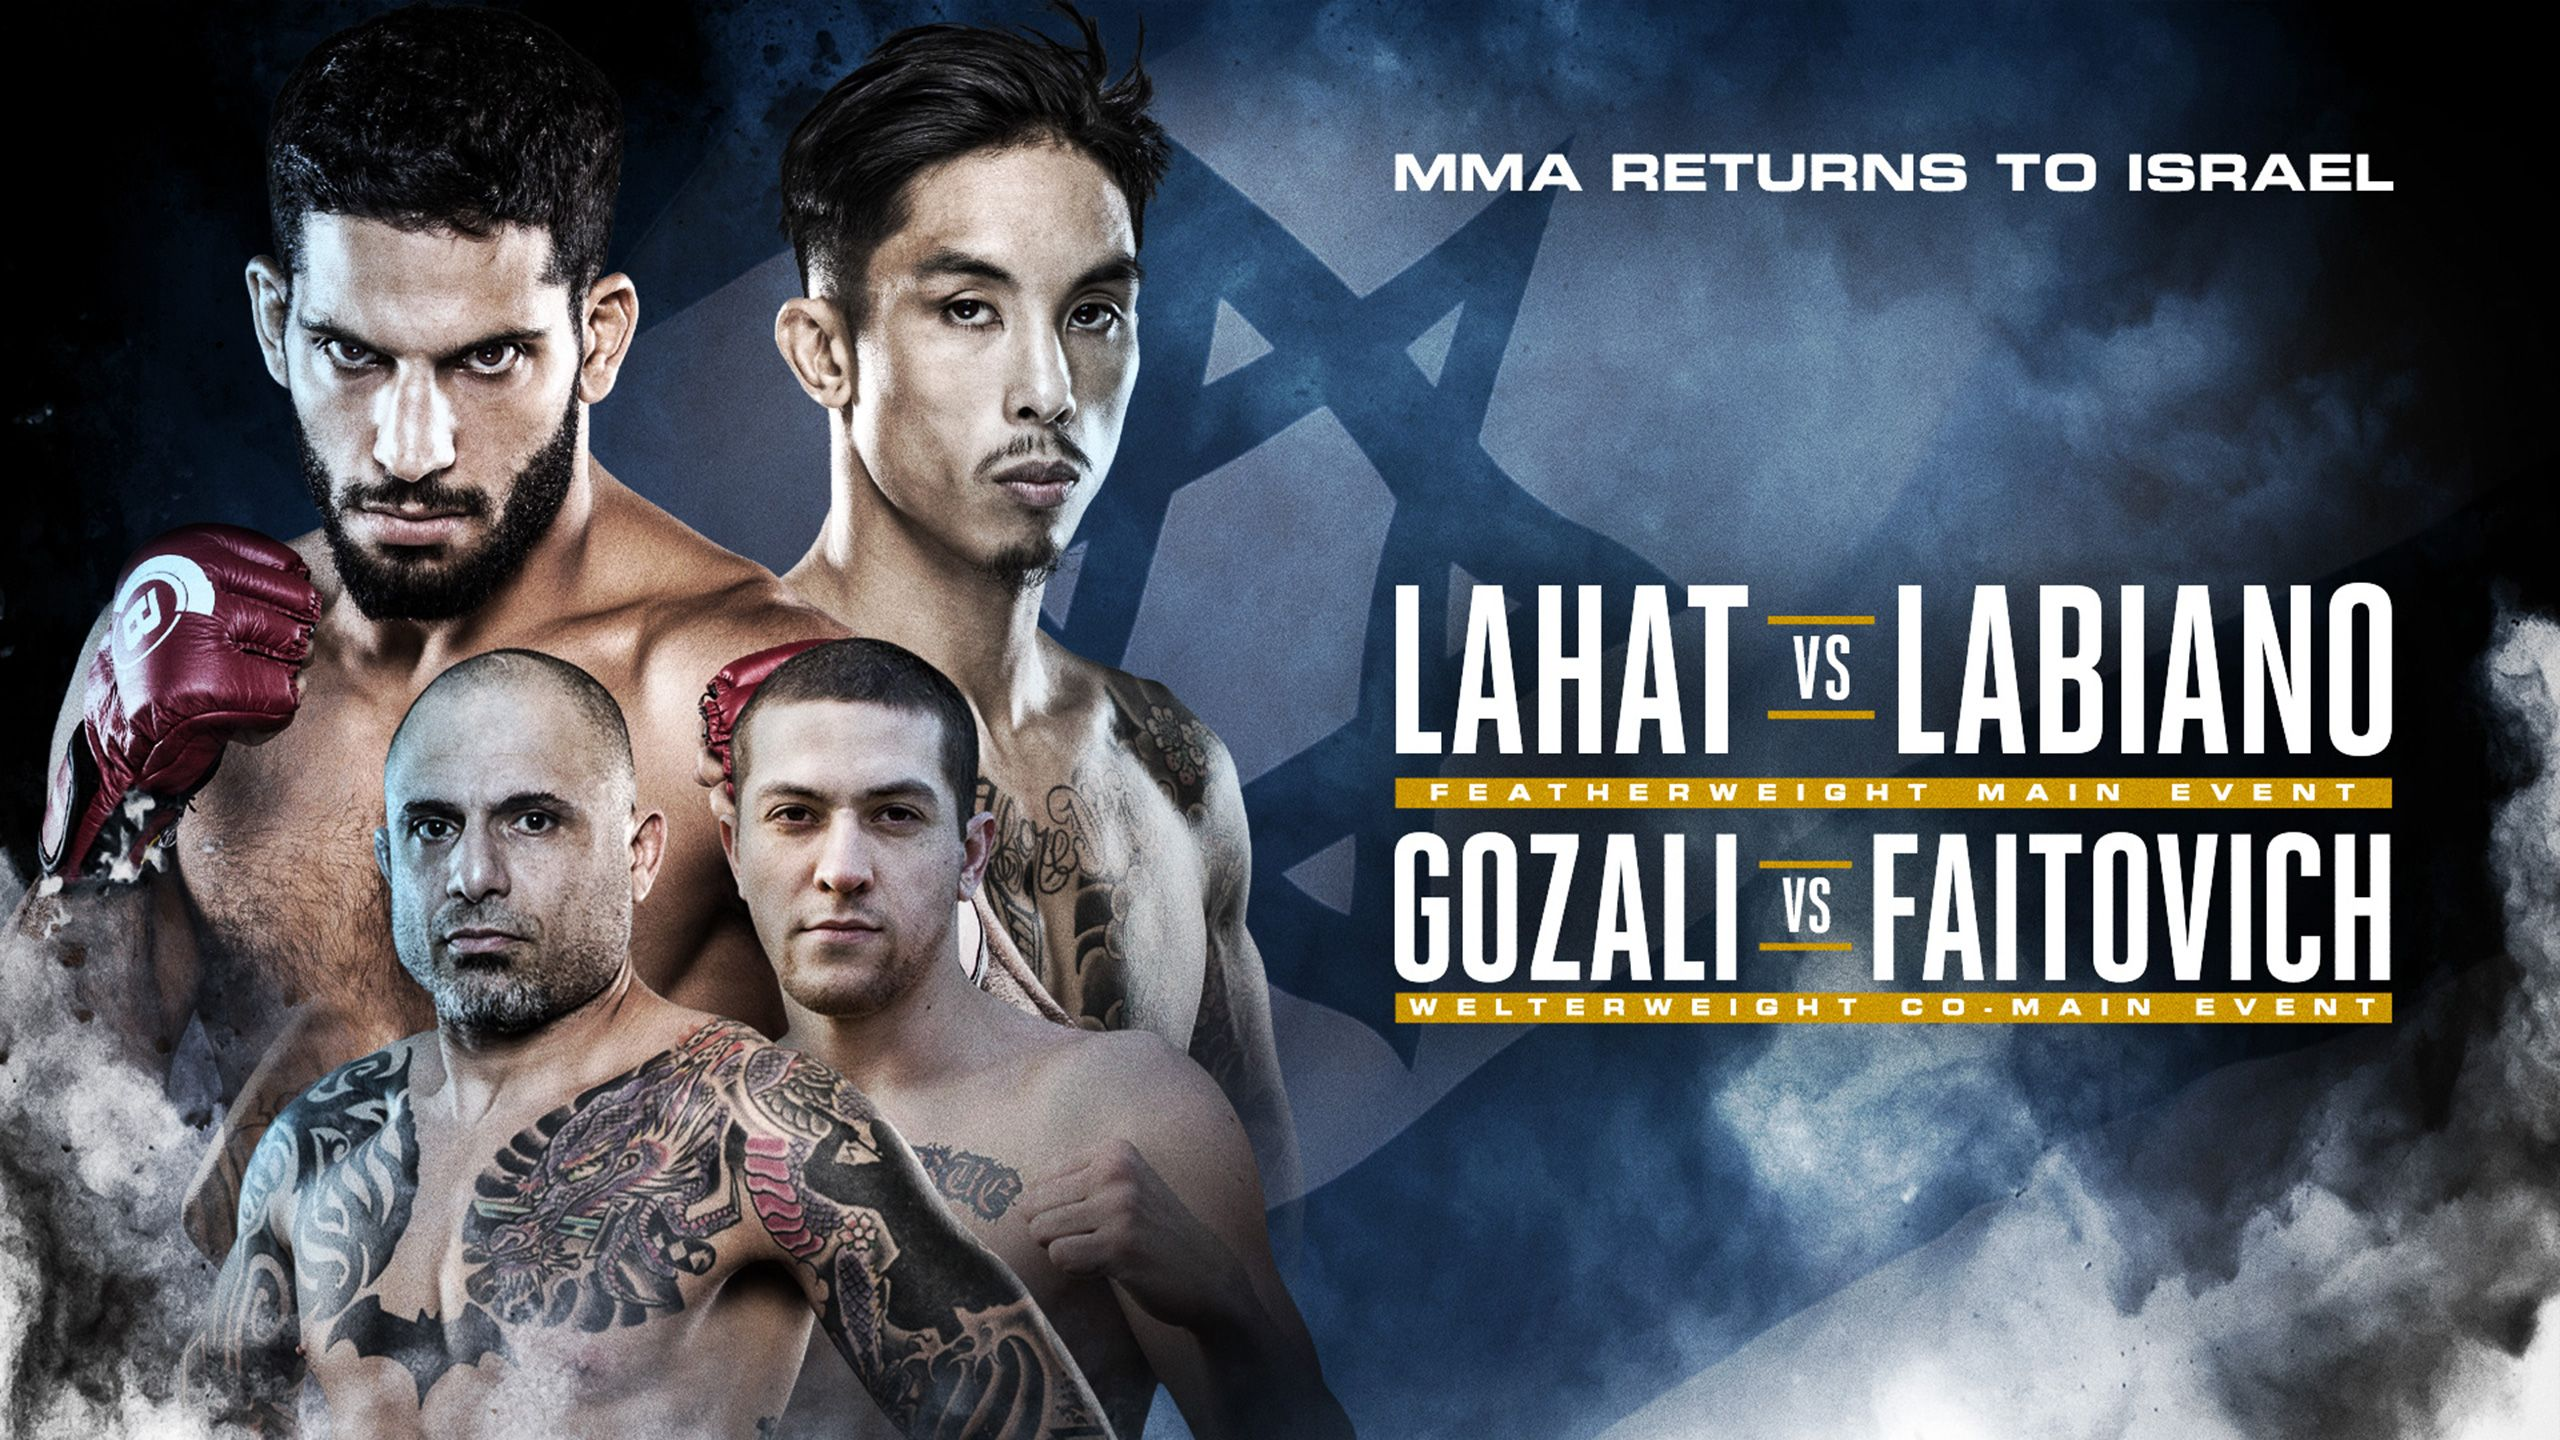 In Spanish - Jeremiah Labiano vs. Noad Lahat (Main Event)